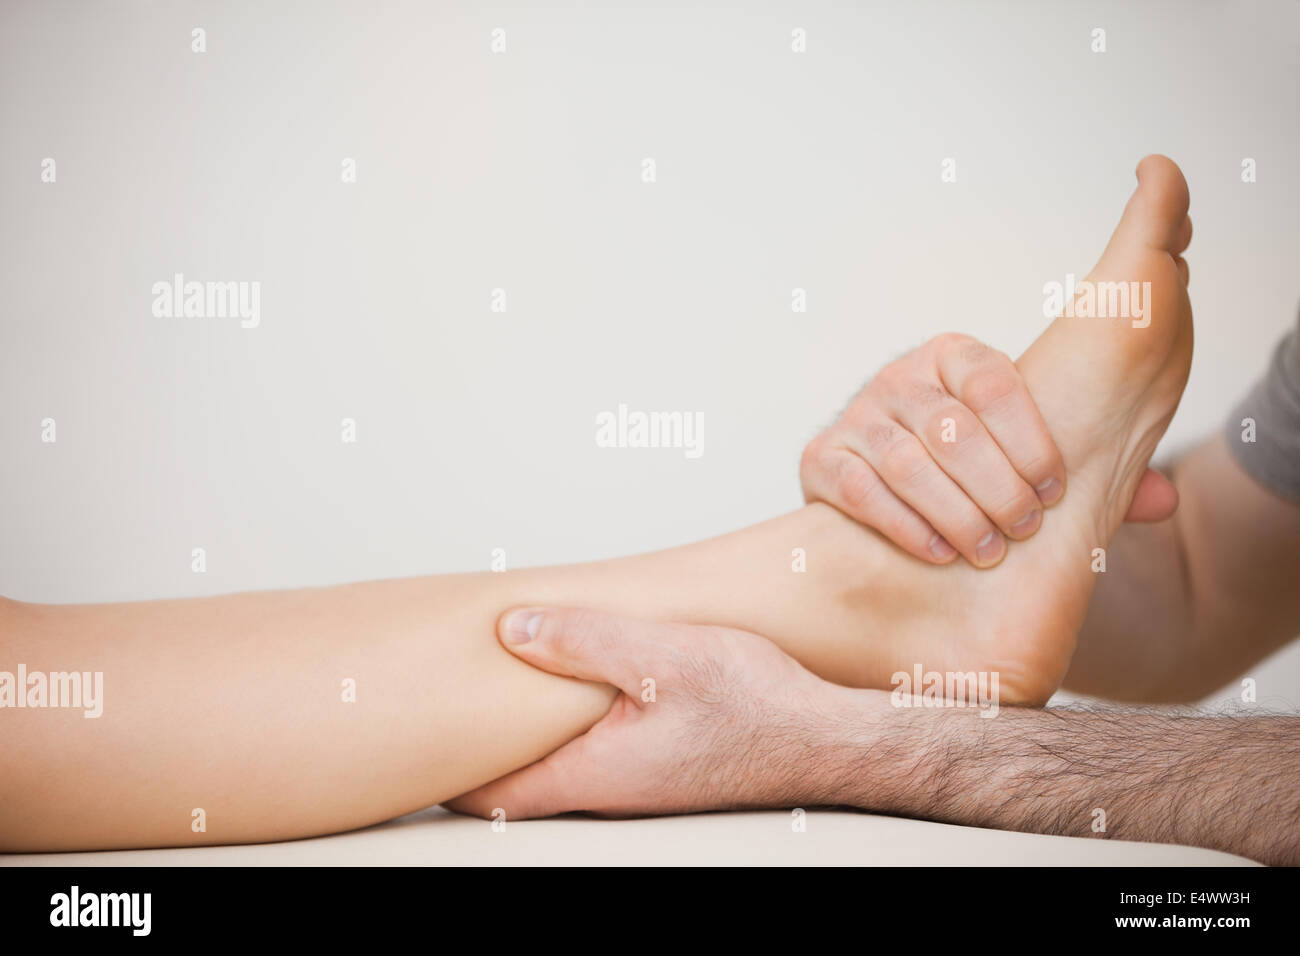 Muscle Of The Foot Stockfotos & Muscle Of The Foot Bilder - Alamy